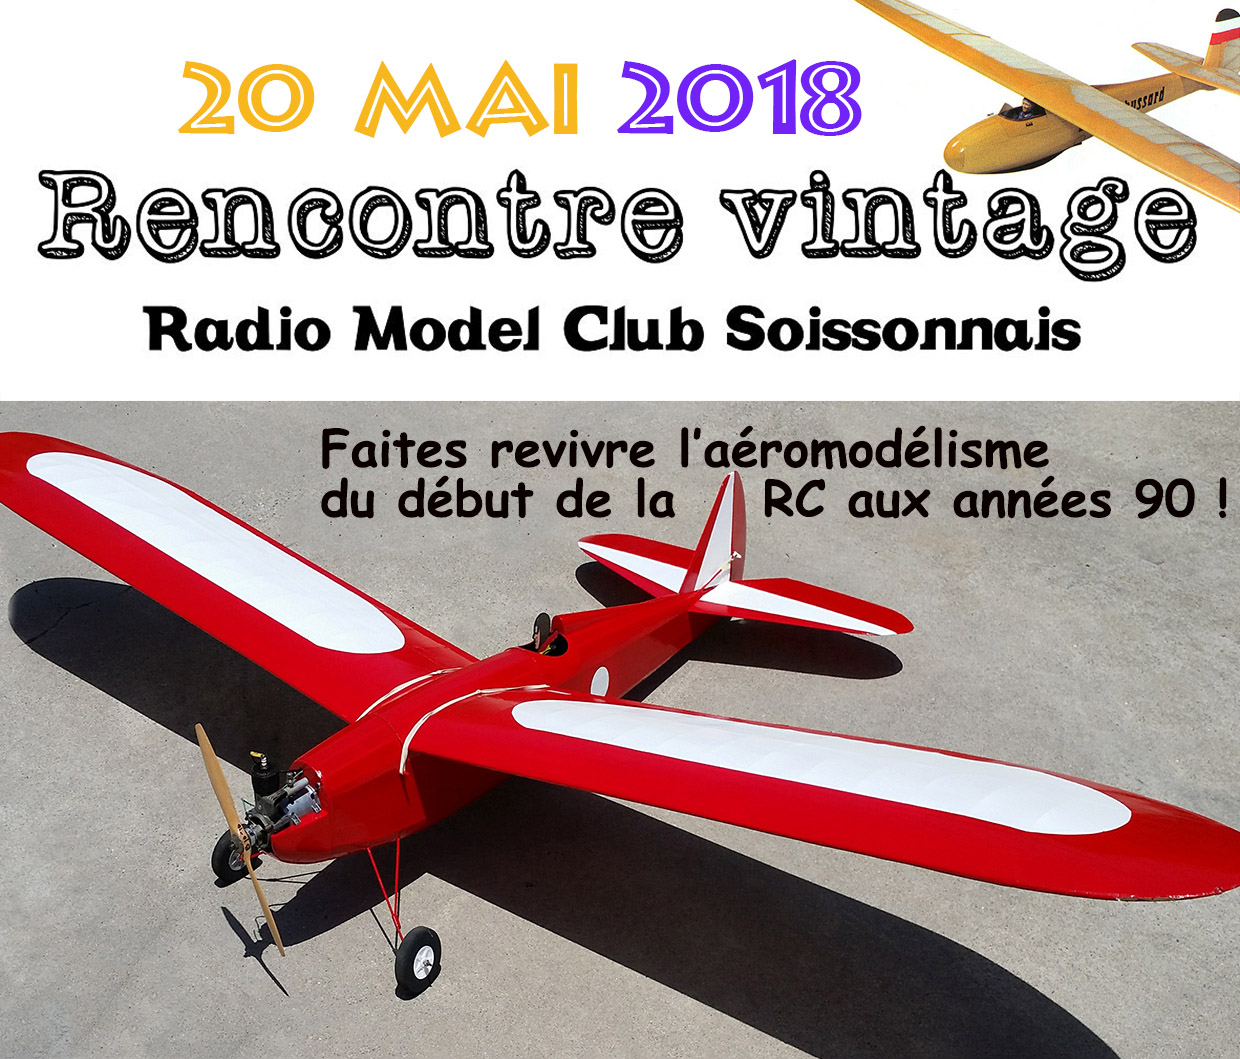 Rc rencontre